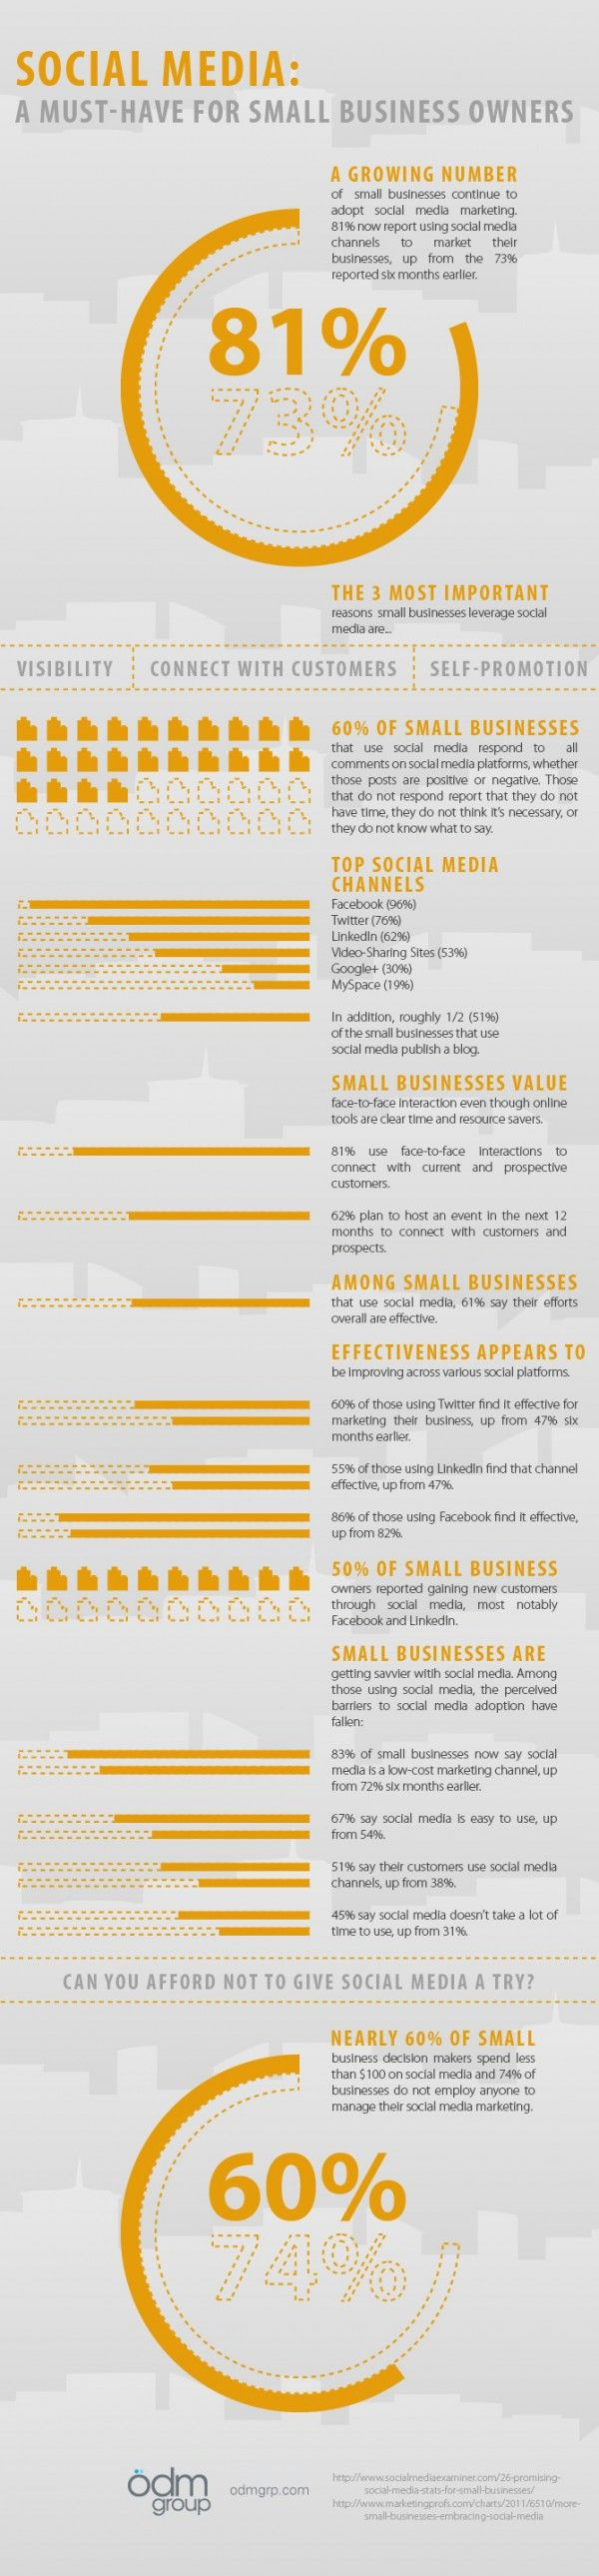 Social Media: A Must-Have For Small Business Owners